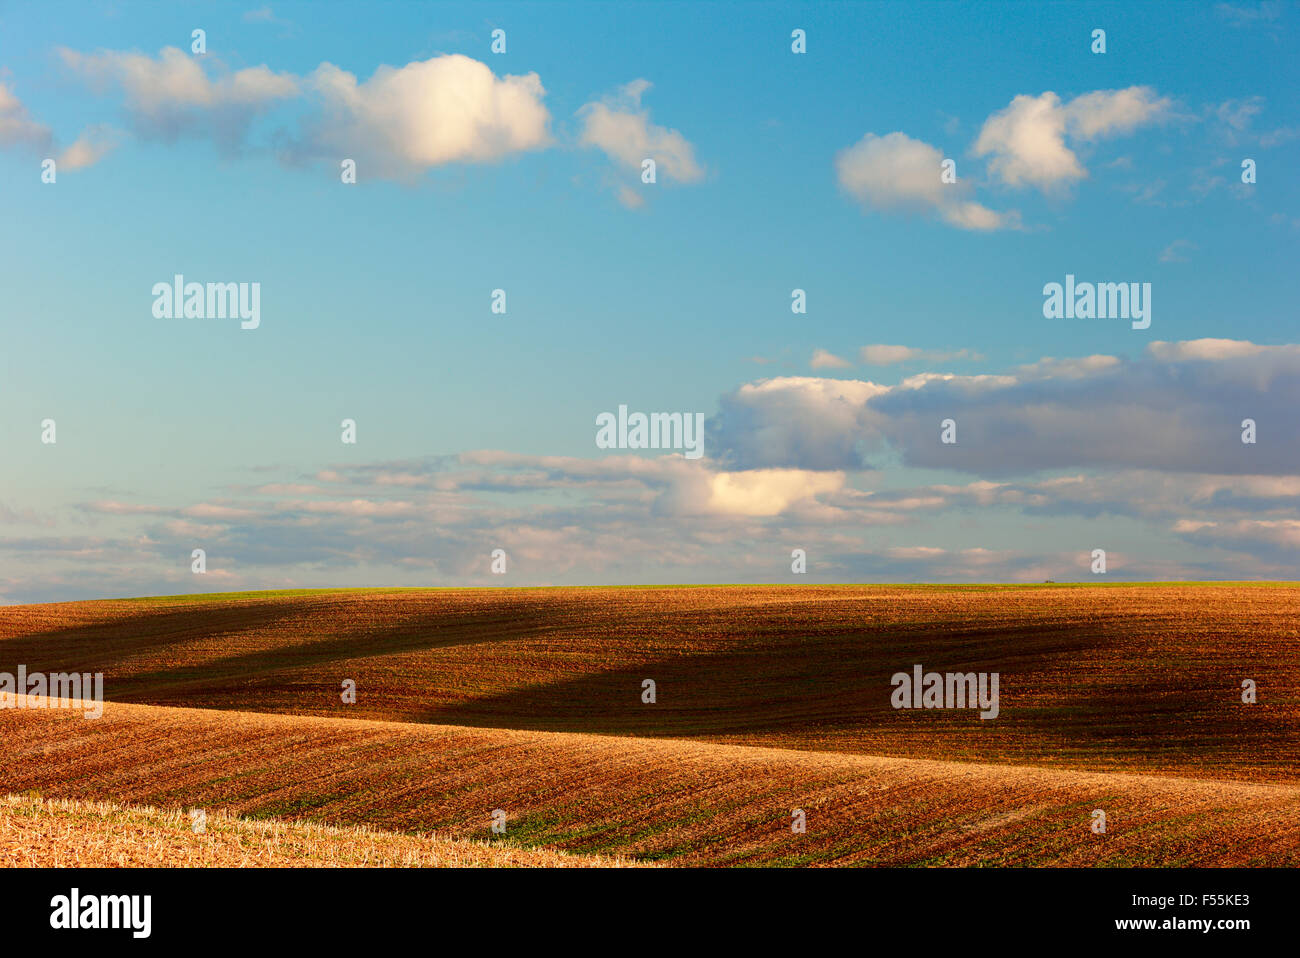 field, hills, the sky beautiful fluffy clouds - Stock Image